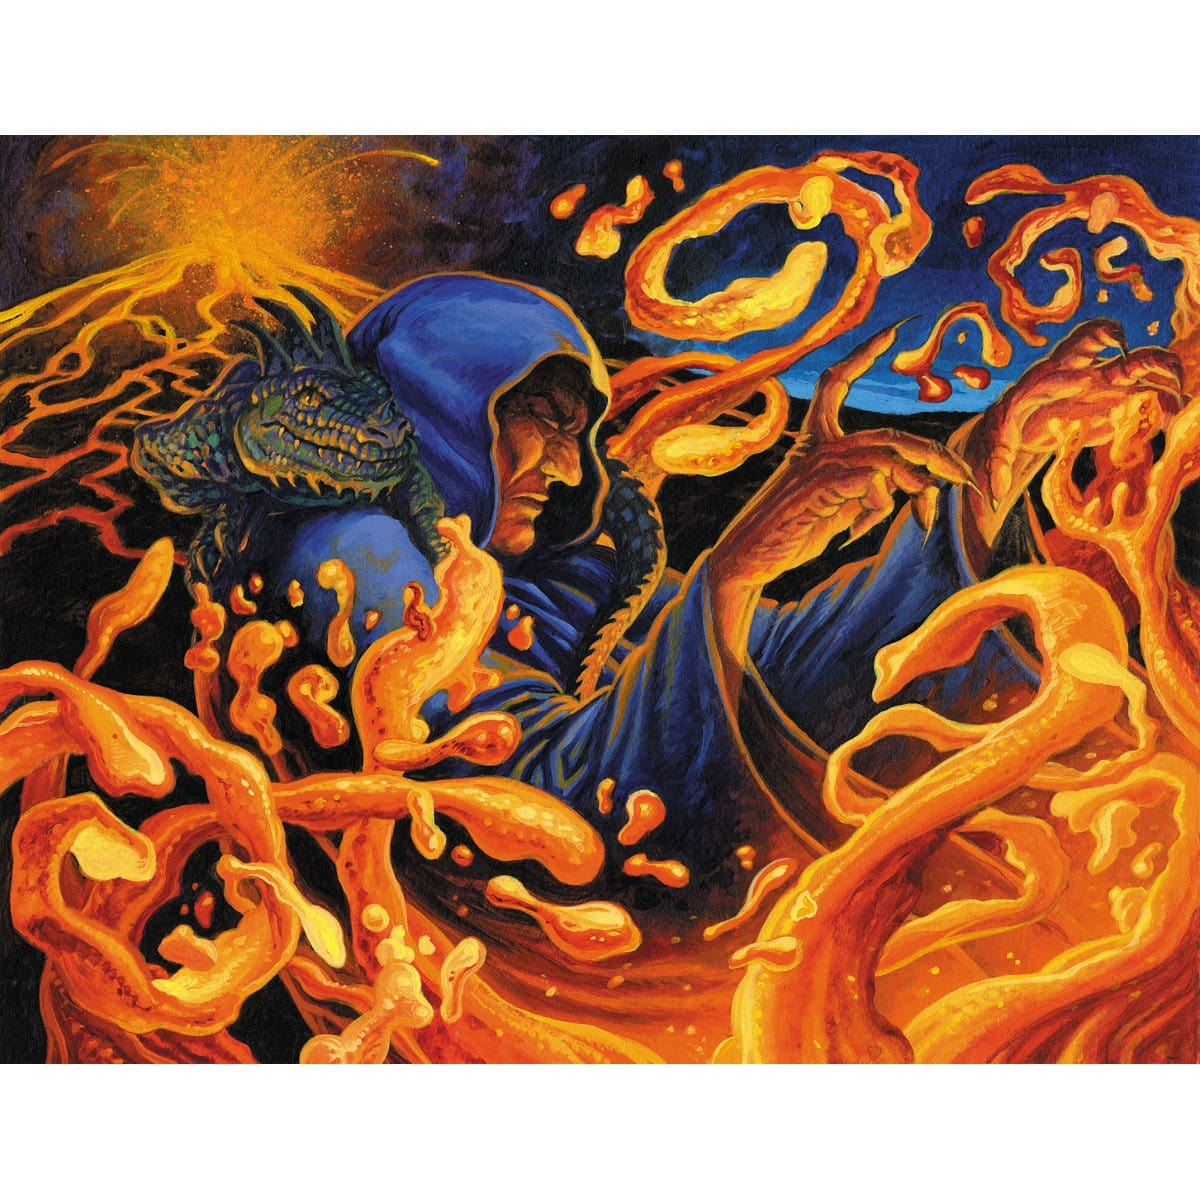 Grim Lavamancer Print - Print - Original Magic Art - Accessories for Magic the Gathering and other card games